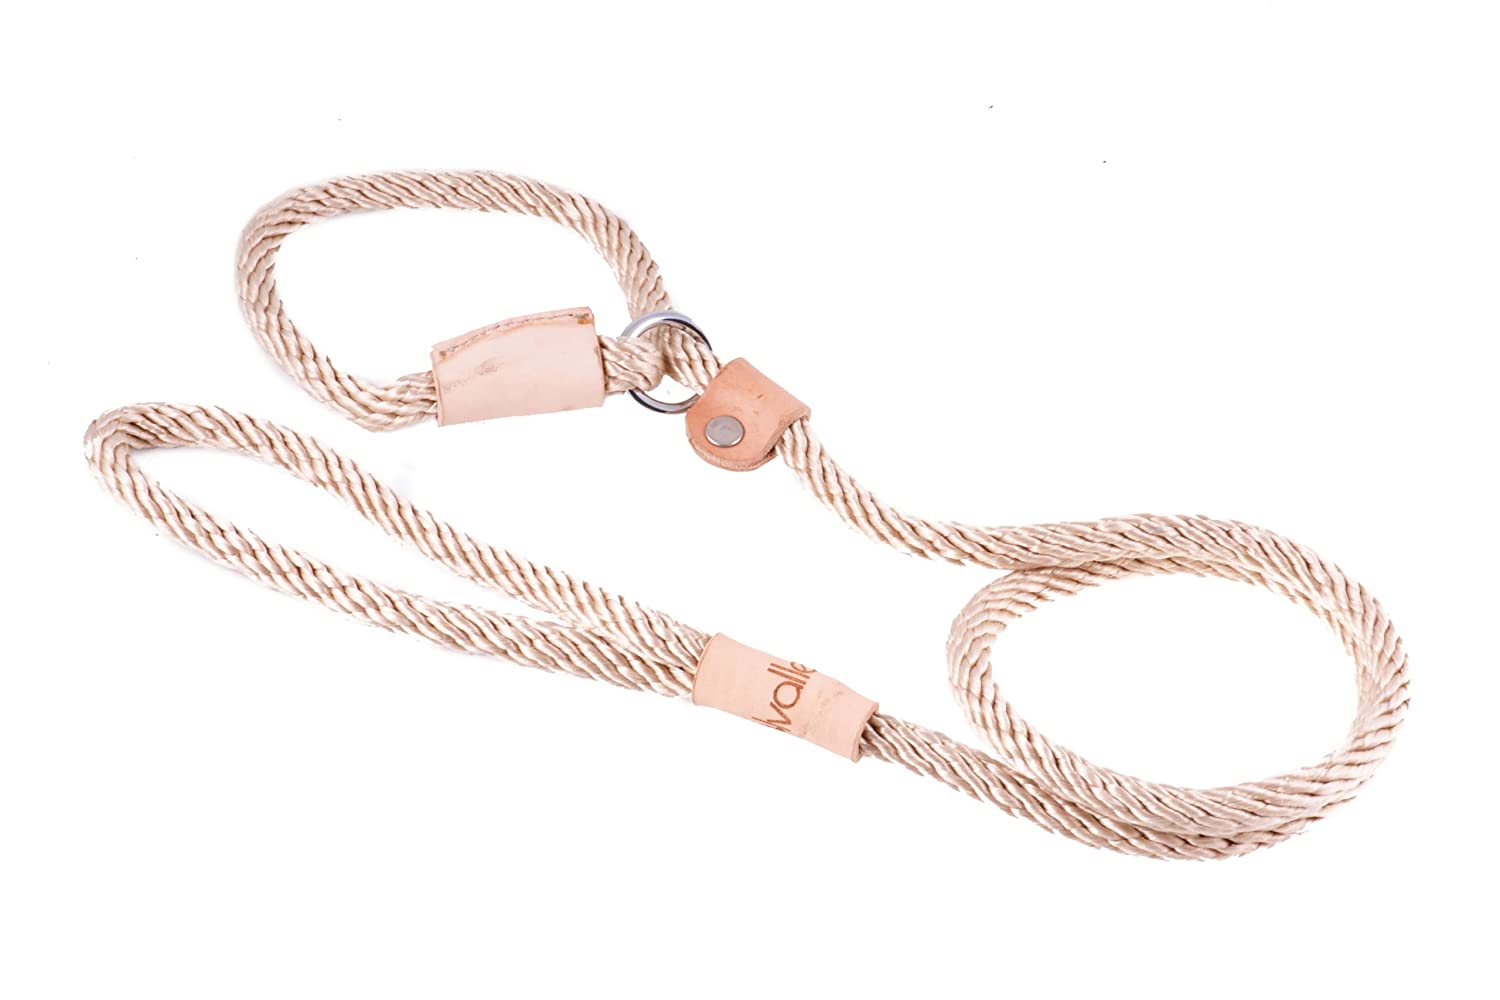 Beige Alvalley Beige Sport Slip Lead with Leather Stop for Dogs Made of Strong Multifilament Polypropylene Rope (8mm X 123cm Or 5 16 in X 4ft)